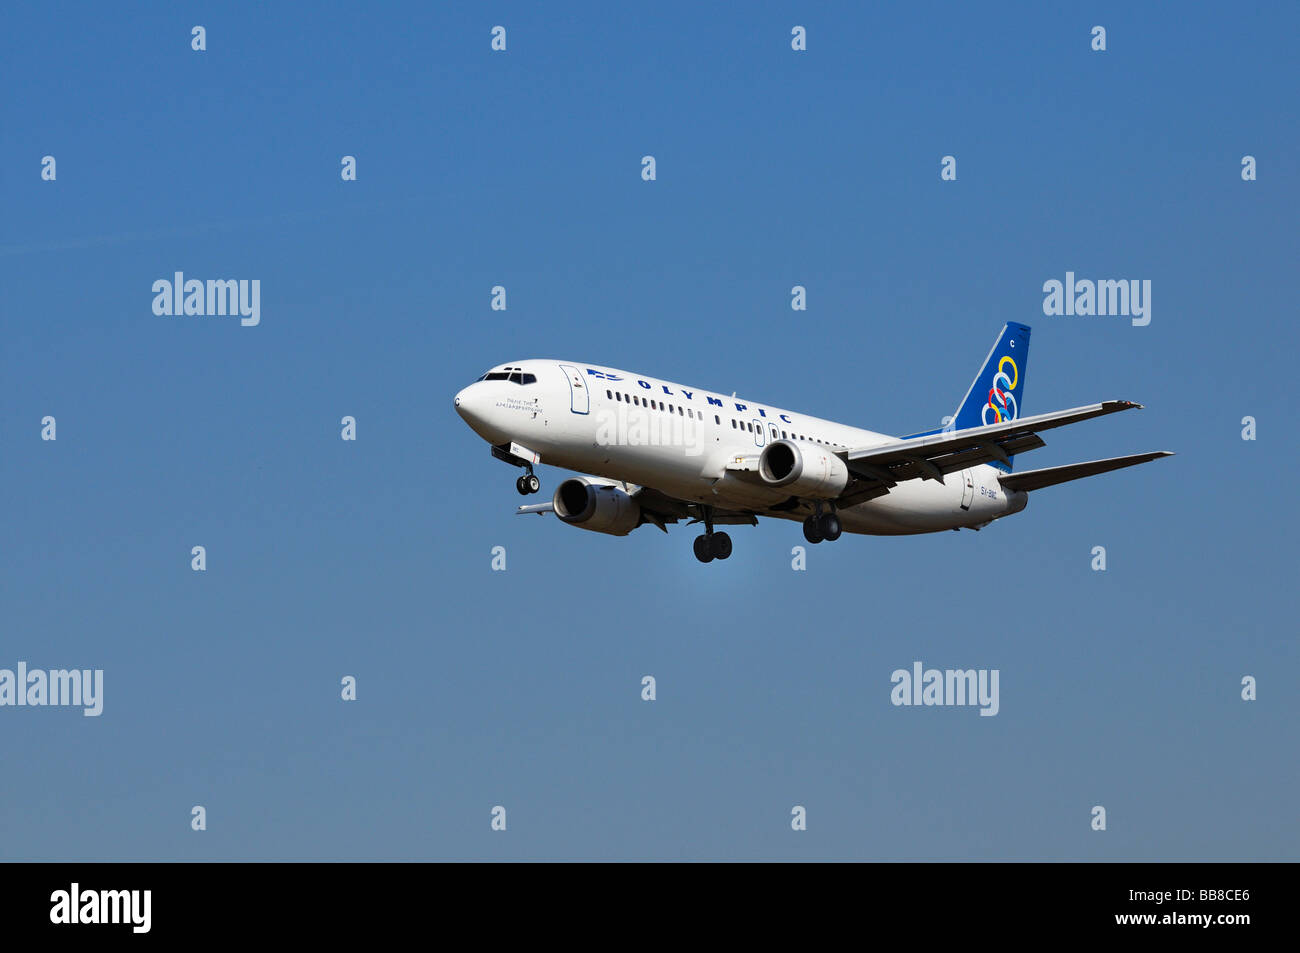 Boeing 737-400, airplane of Olympic Airlines, Greek national airline - Stock Image